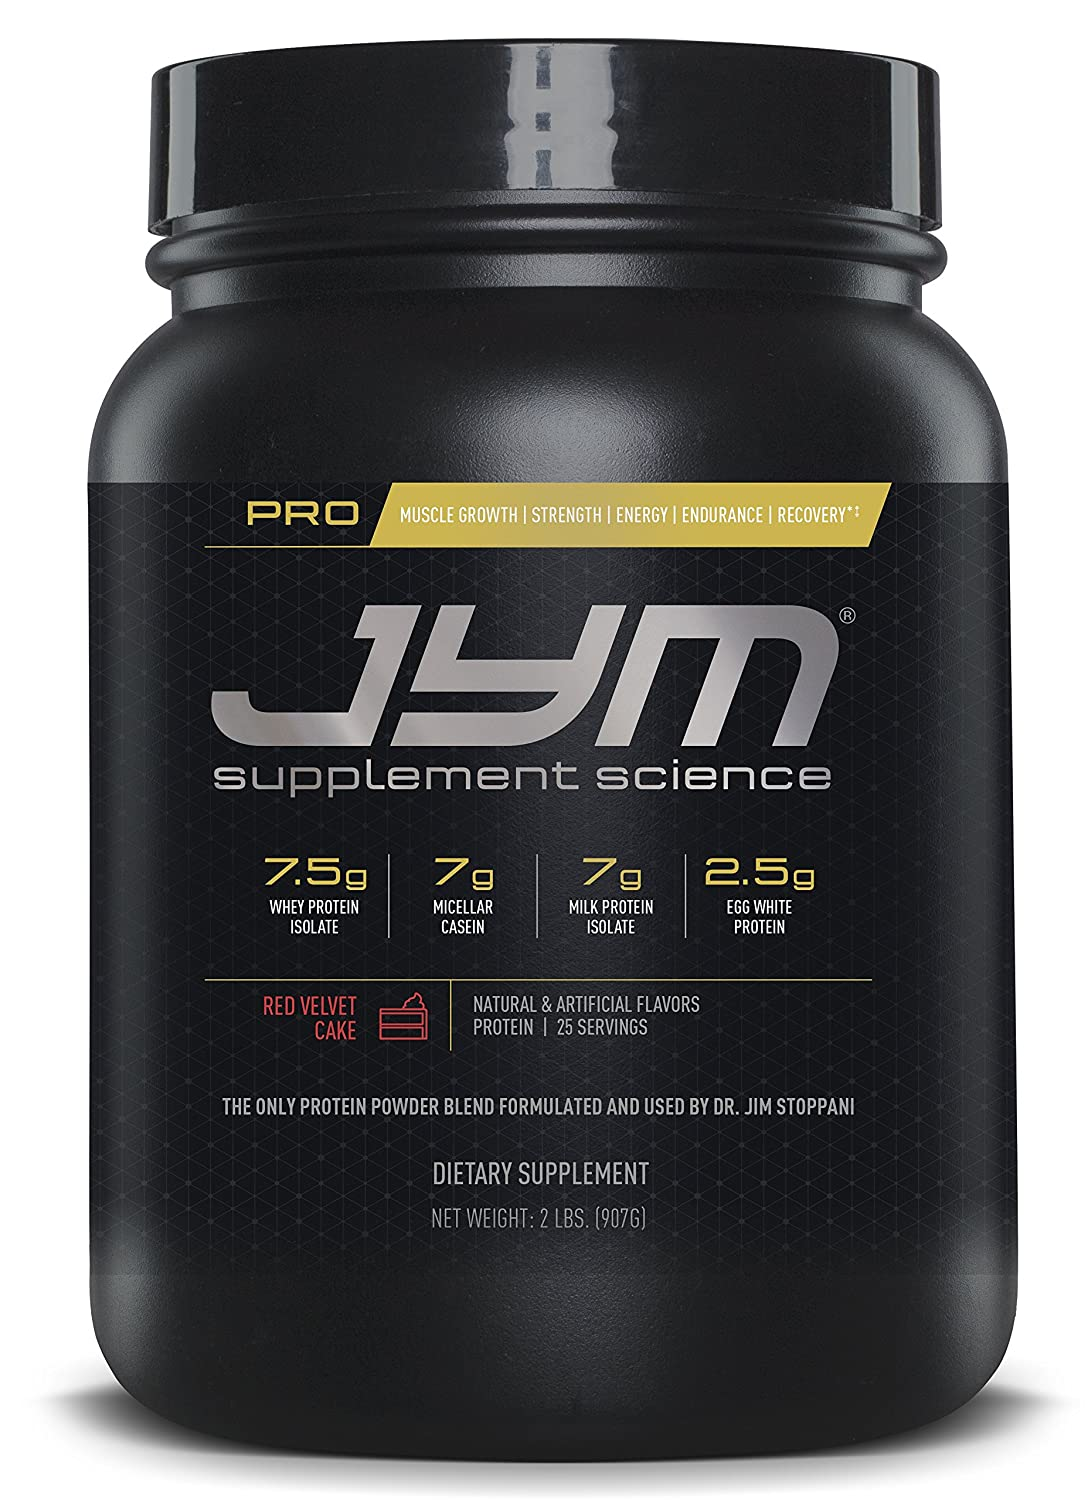 JYM Supplement Science, PRO JYM, An optimal Blend of Whey, Casein, and Egg Proteins, Red Velvet Cake, 2lb Protein